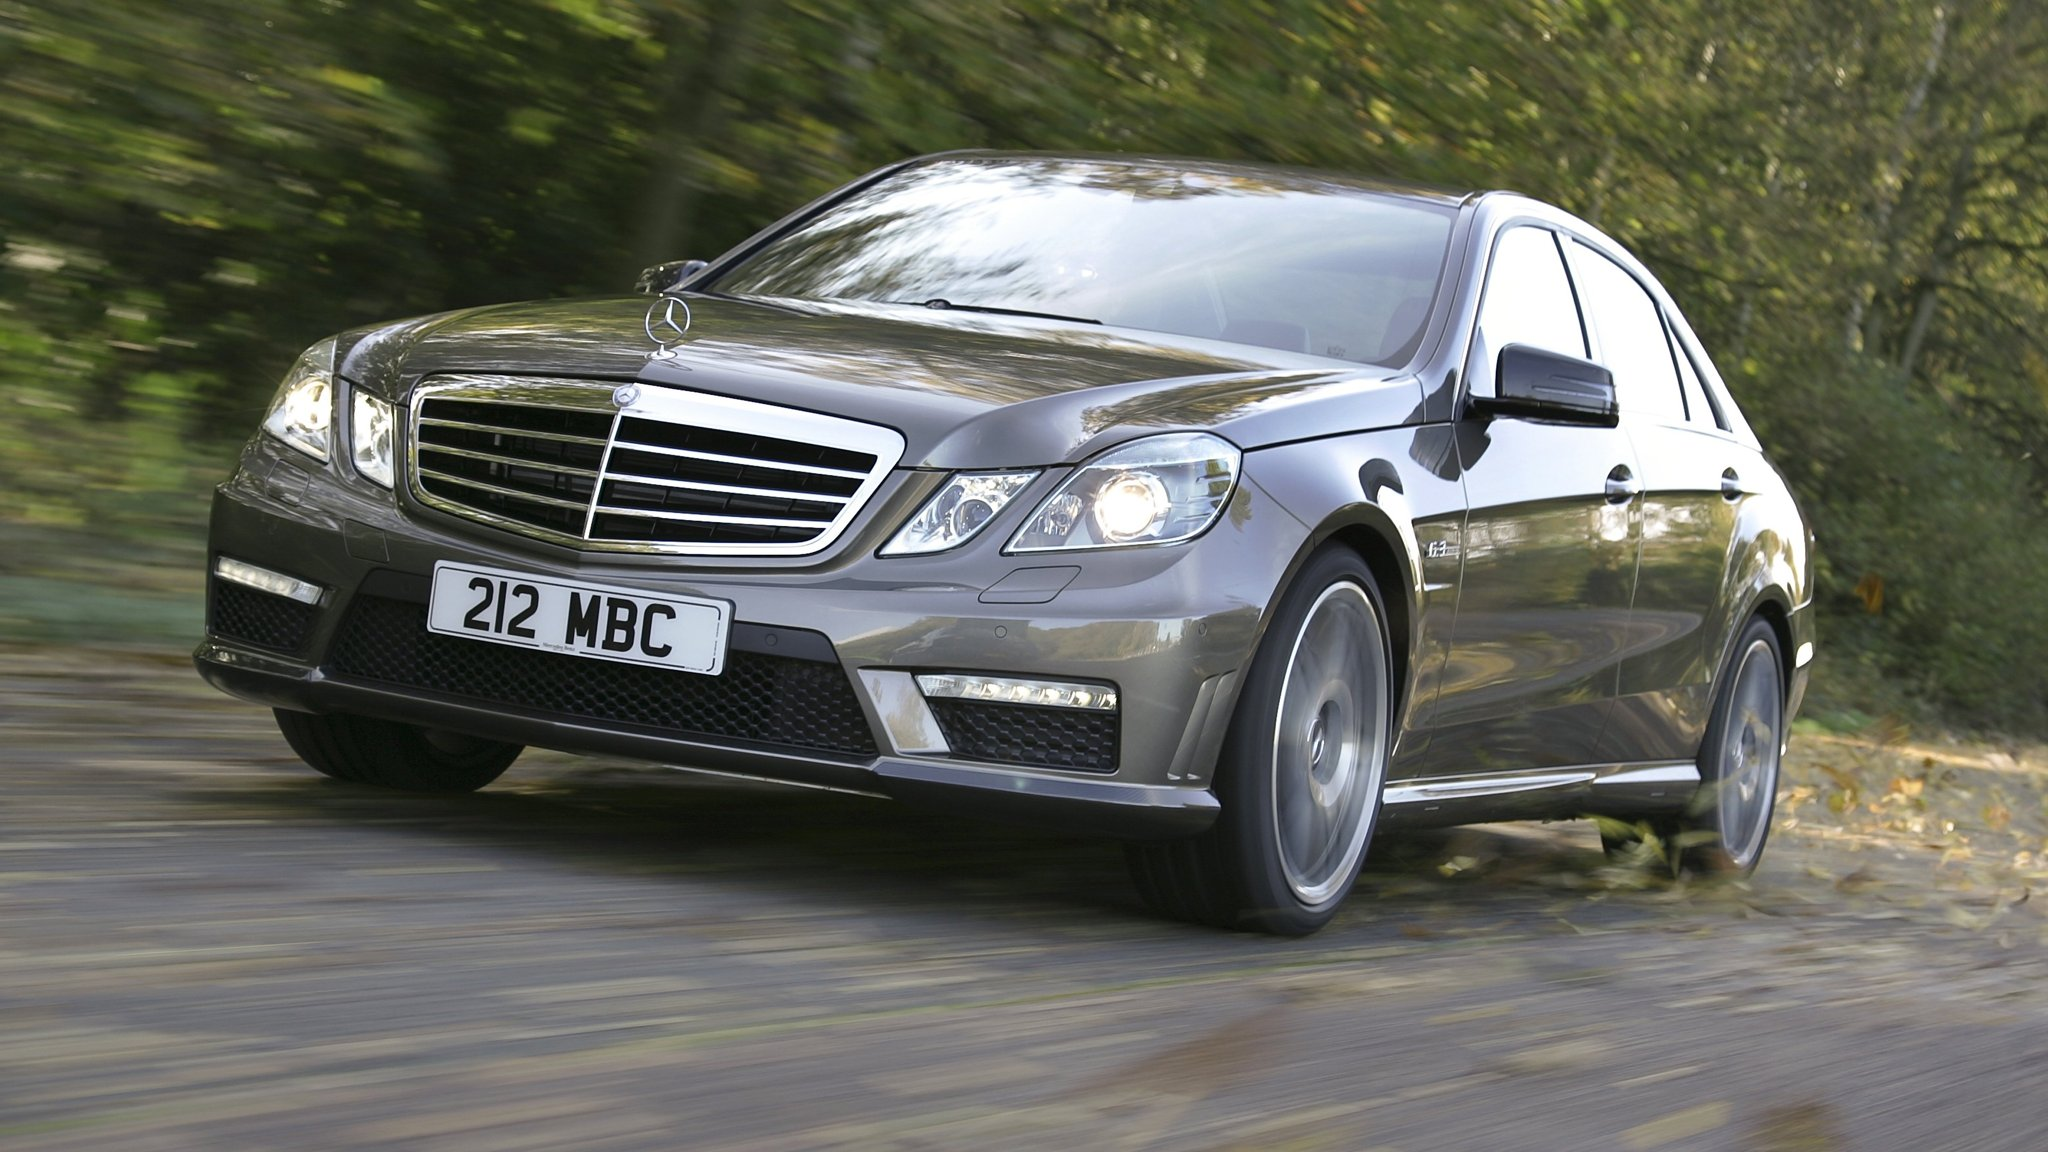 Mercedes Benz Gains On Bmw In Global Luxury Car Sales Race Financial Times